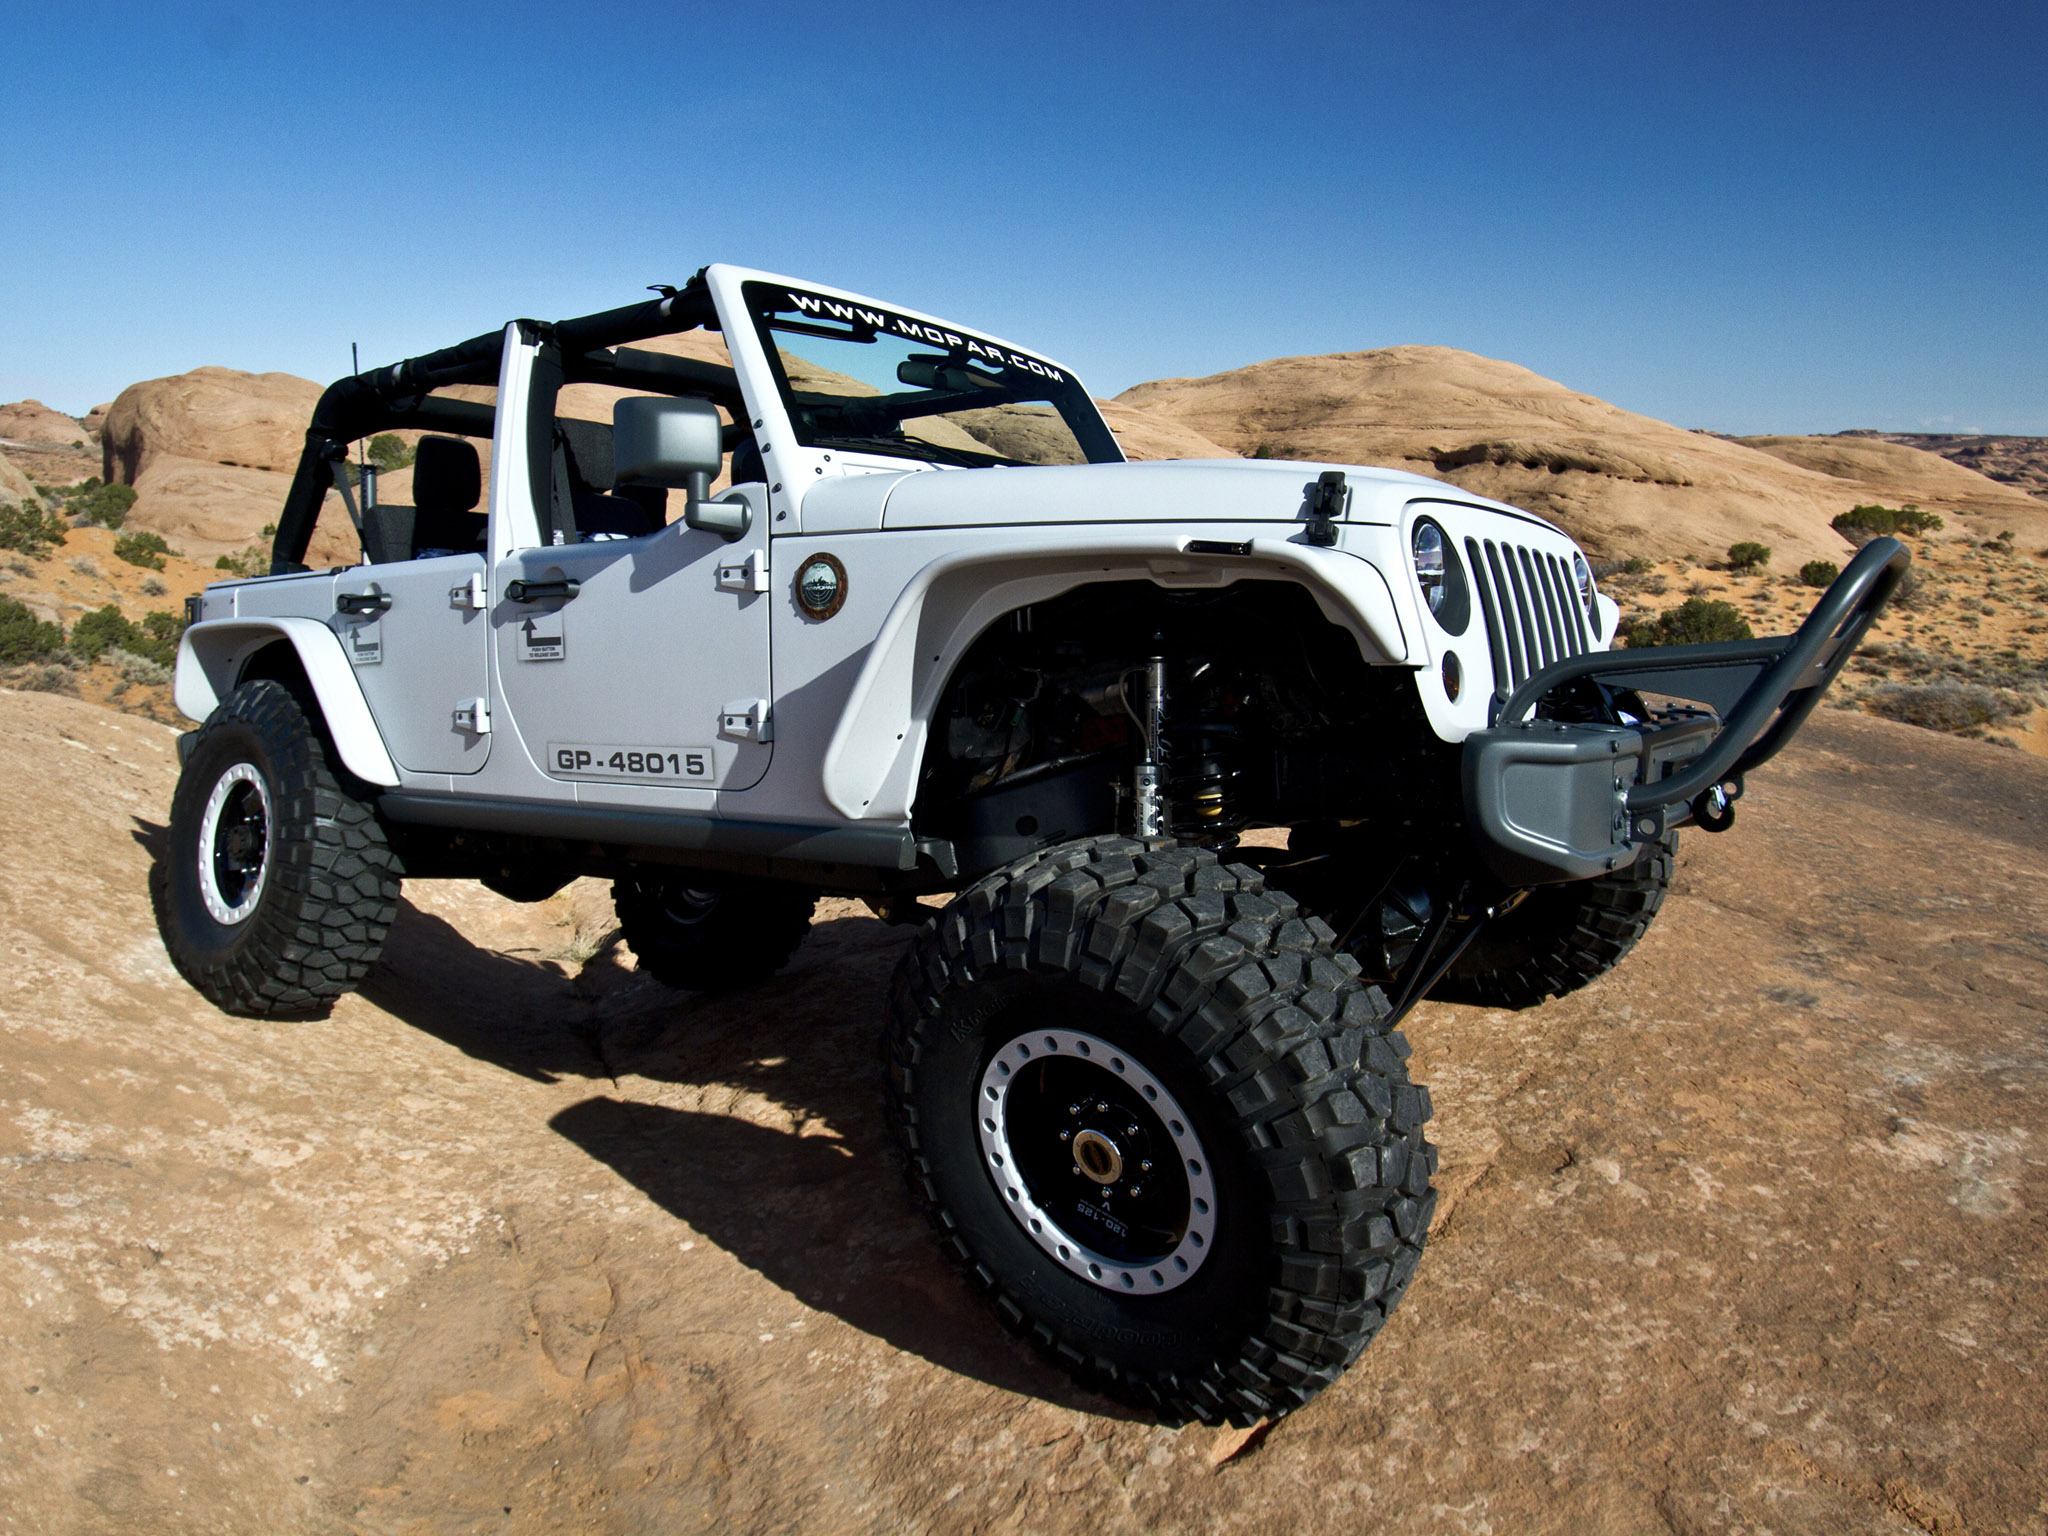 Recon Concept offroad 4x4 wallpaper 2048x1536 112326 WallpaperUP 2048x1536